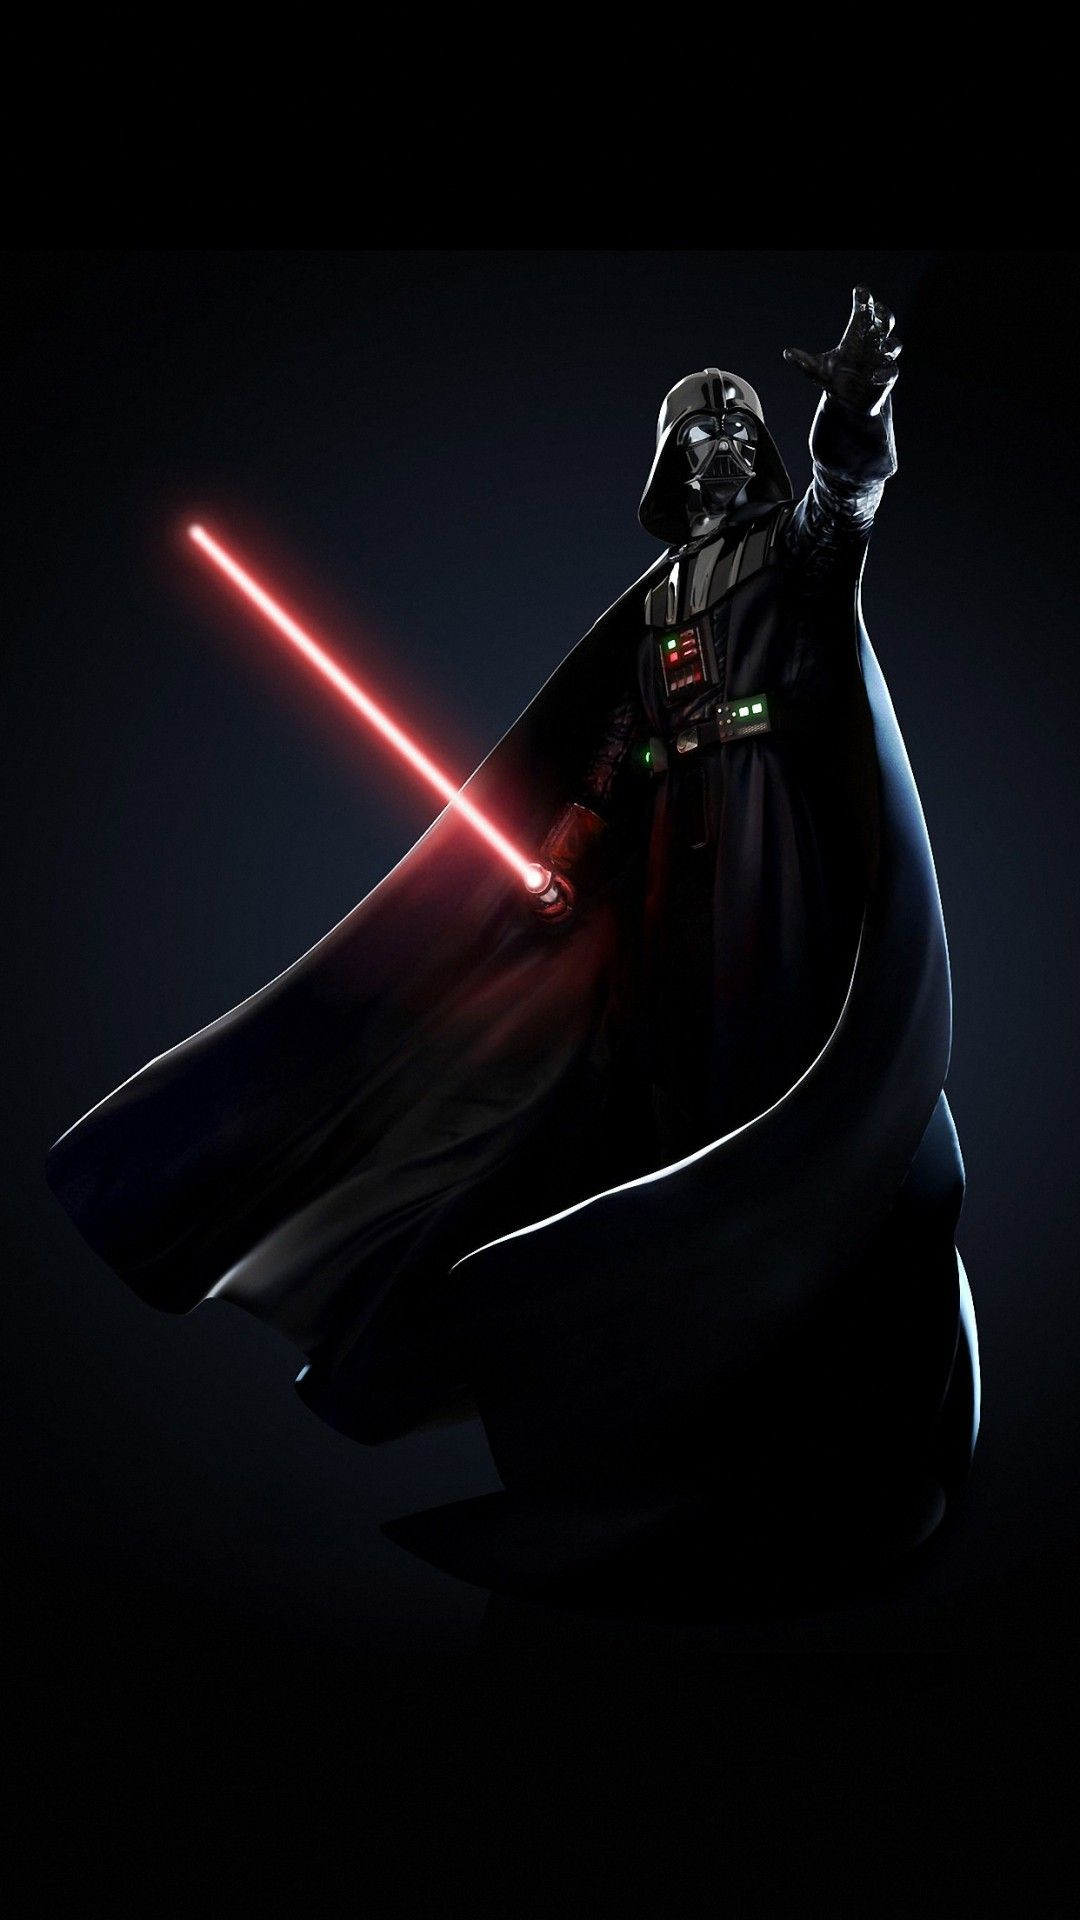 Darth Vader Star War Iphone7 Wallpapers Star Wars Sanati Darth Vader Star Wars